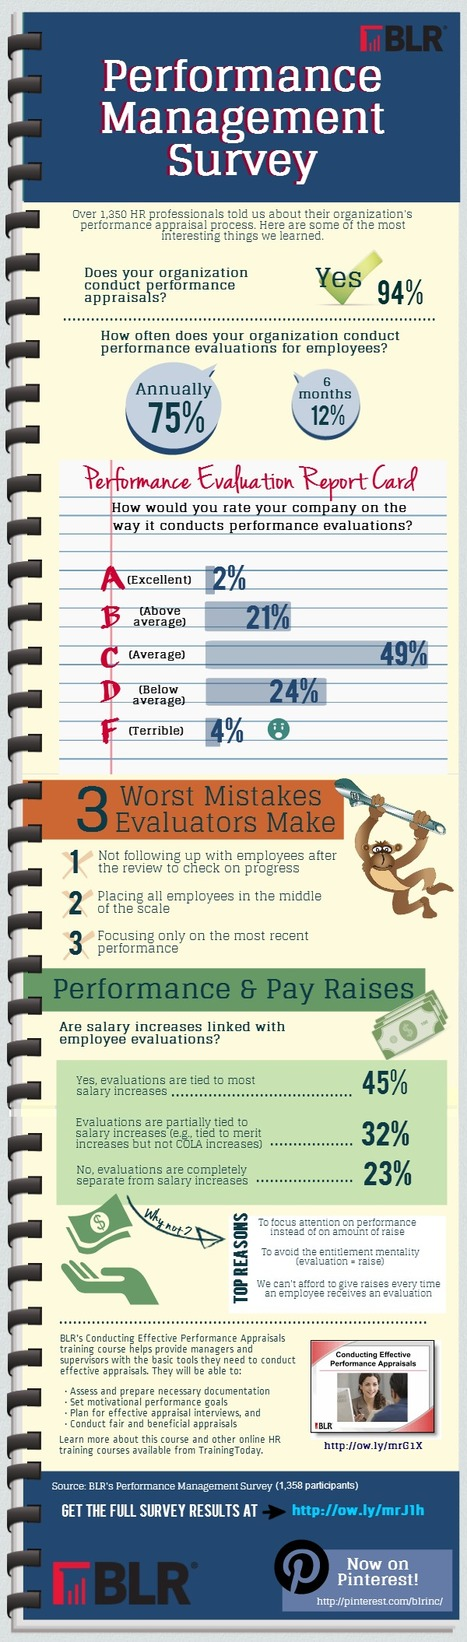 2013 Performance Appraisal Report Card, #Infographic | Talent and Performance Development | Scoop.it